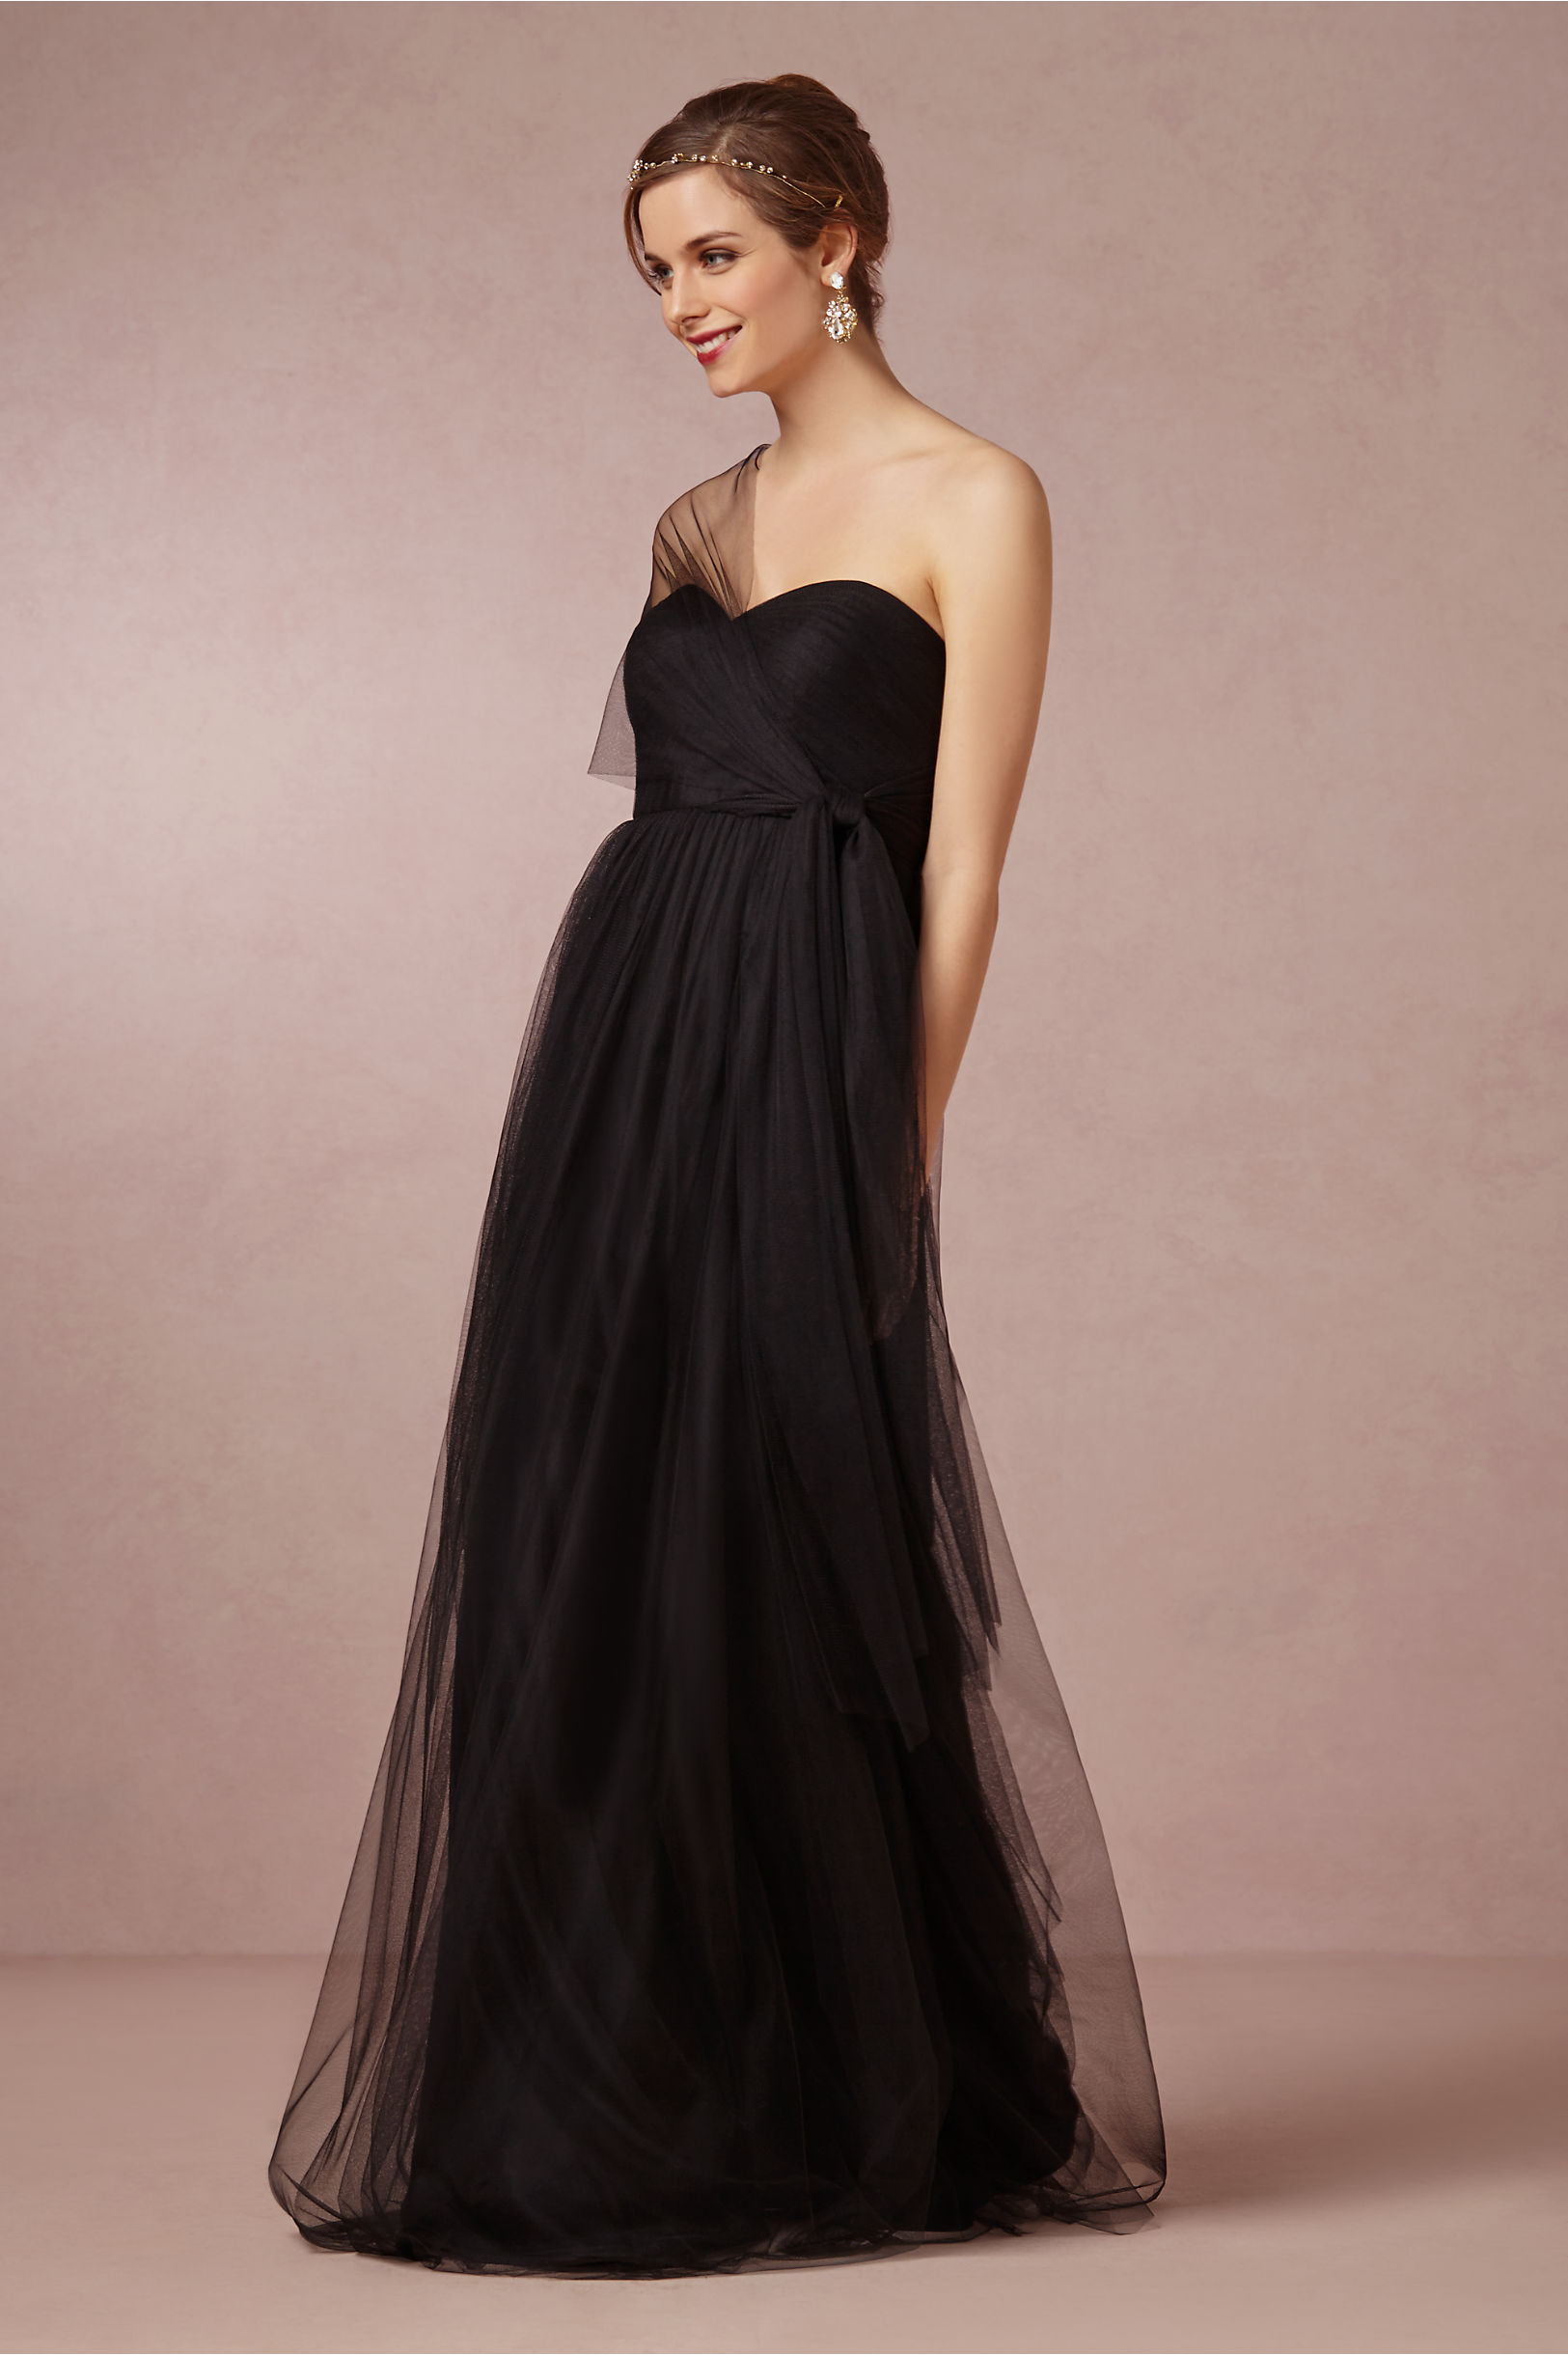 Bridesmaid dresses annabelleother dressesdressesss bridesmaid dresses annabelle ombrellifo Images